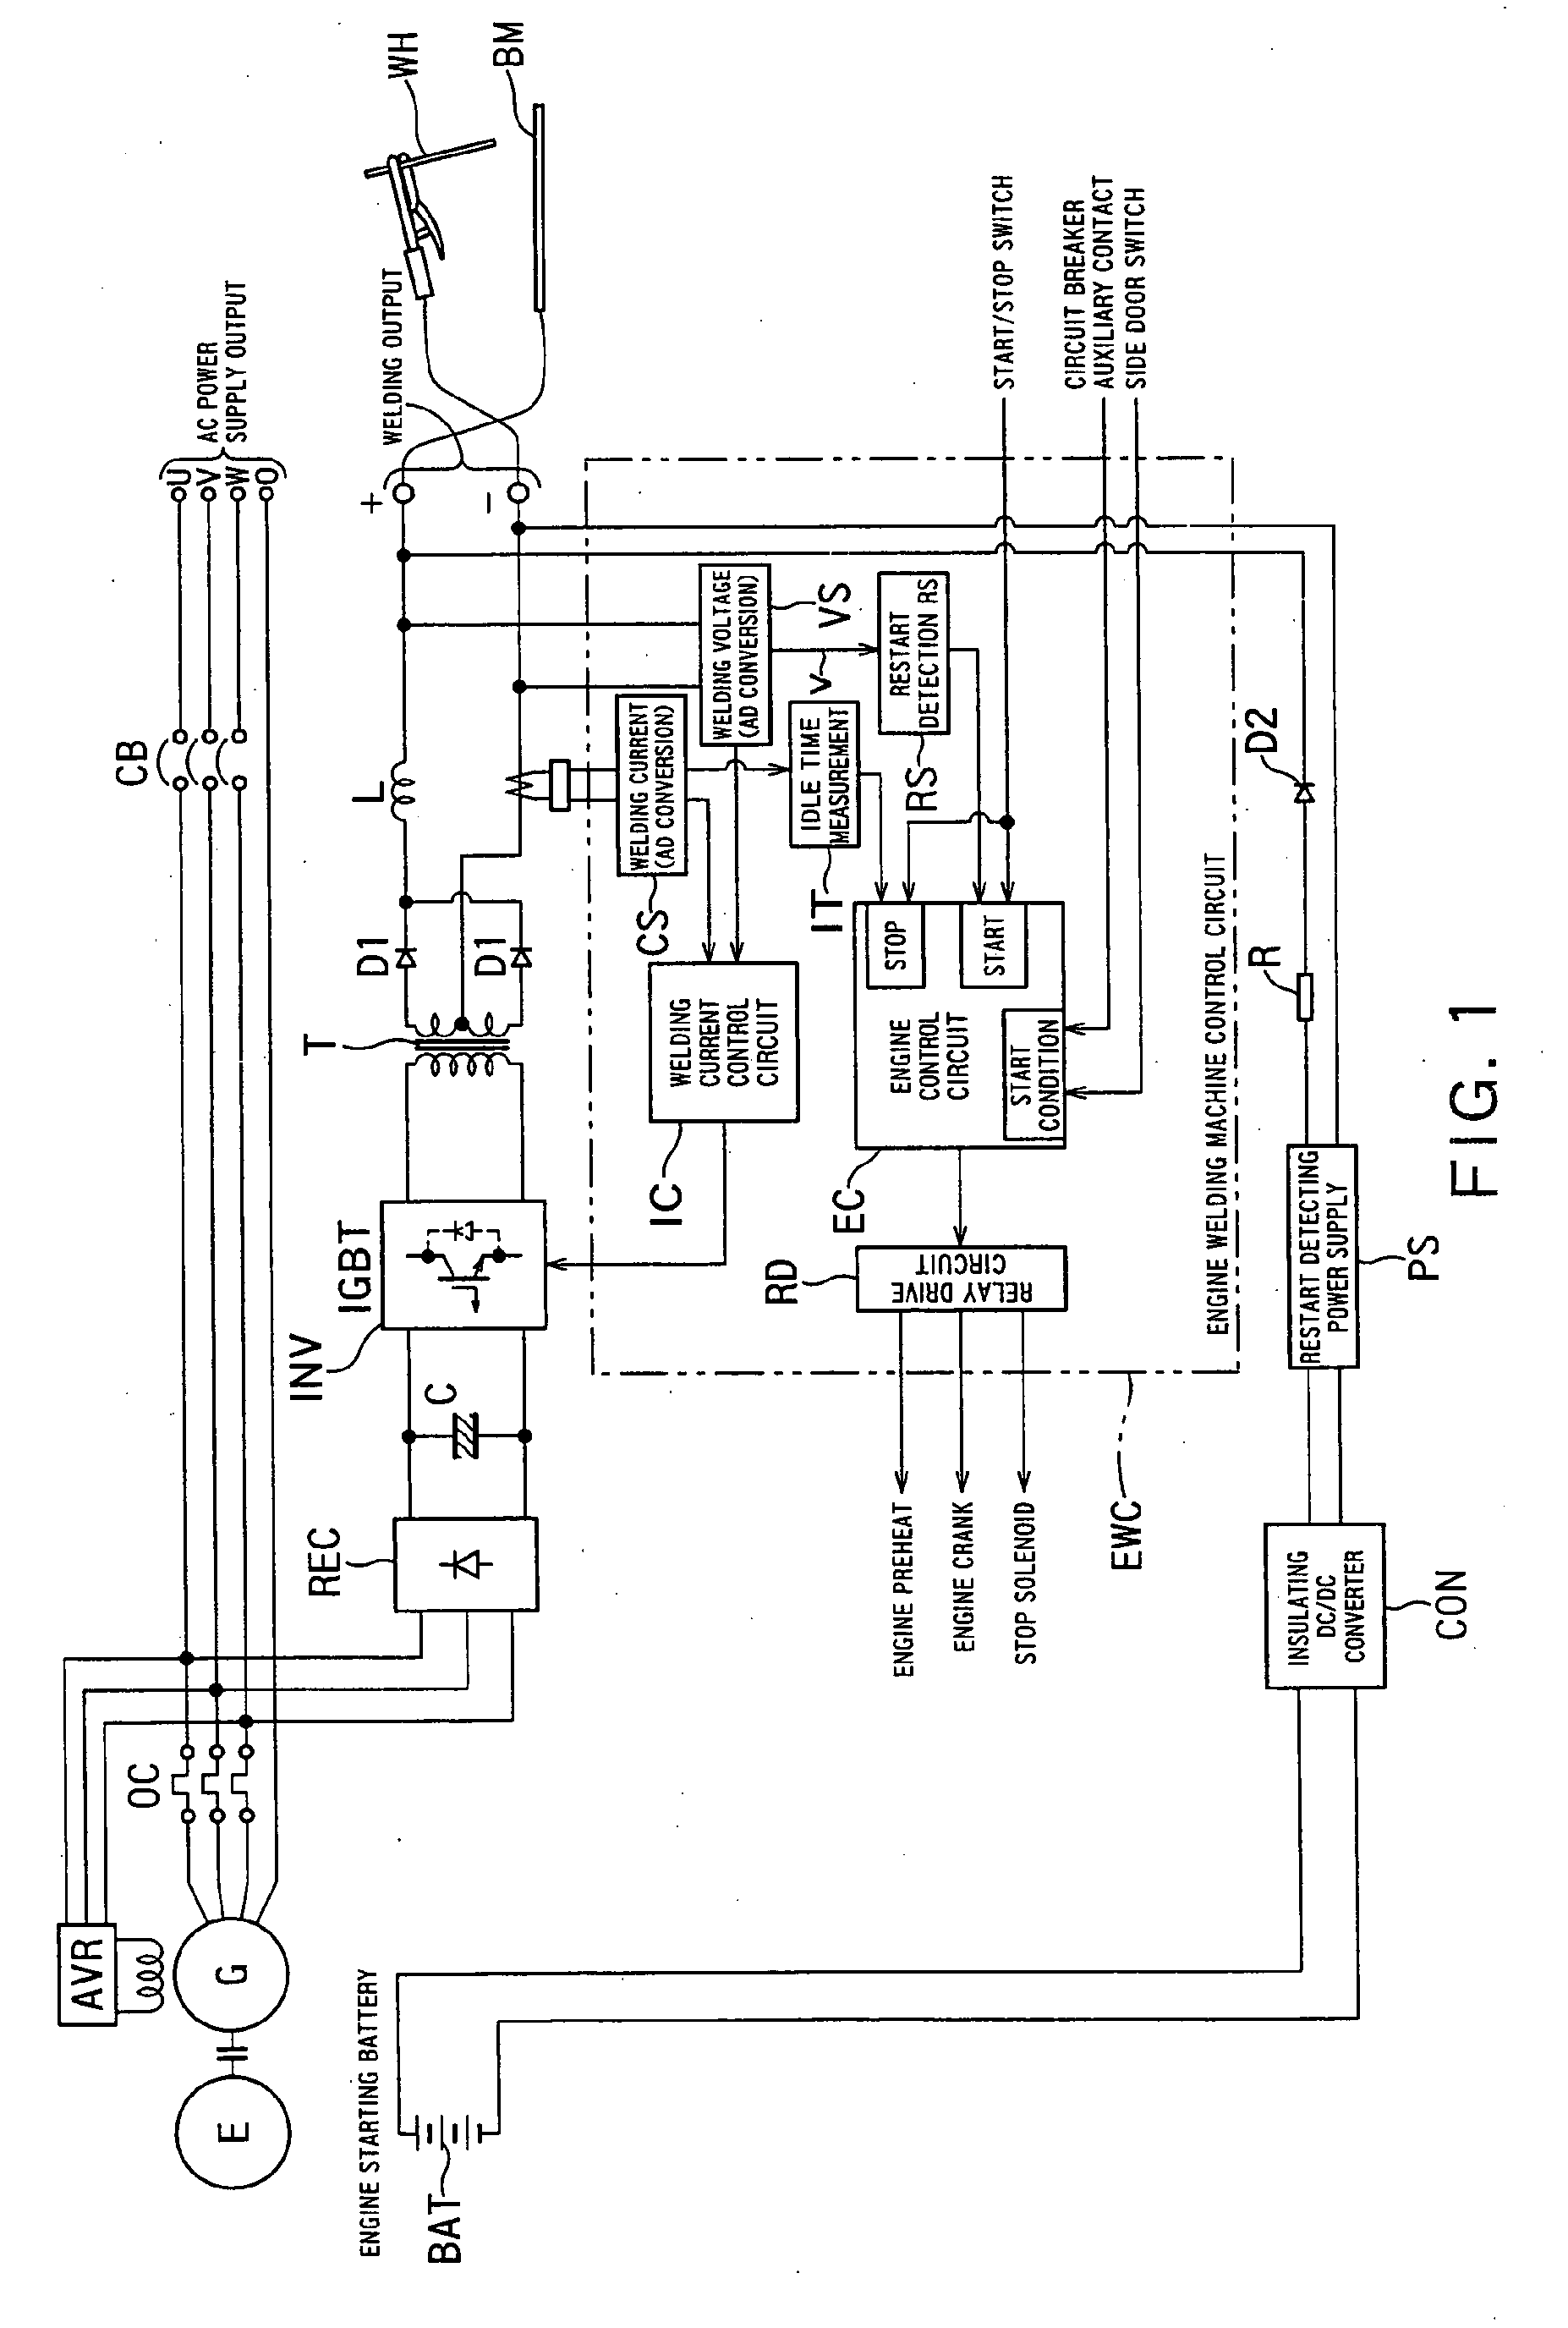 Airman generator wiring diagram 31 wiring diagram images airman generator wiring diagram 31 wiring diagram images asfbconference2016 Image collections